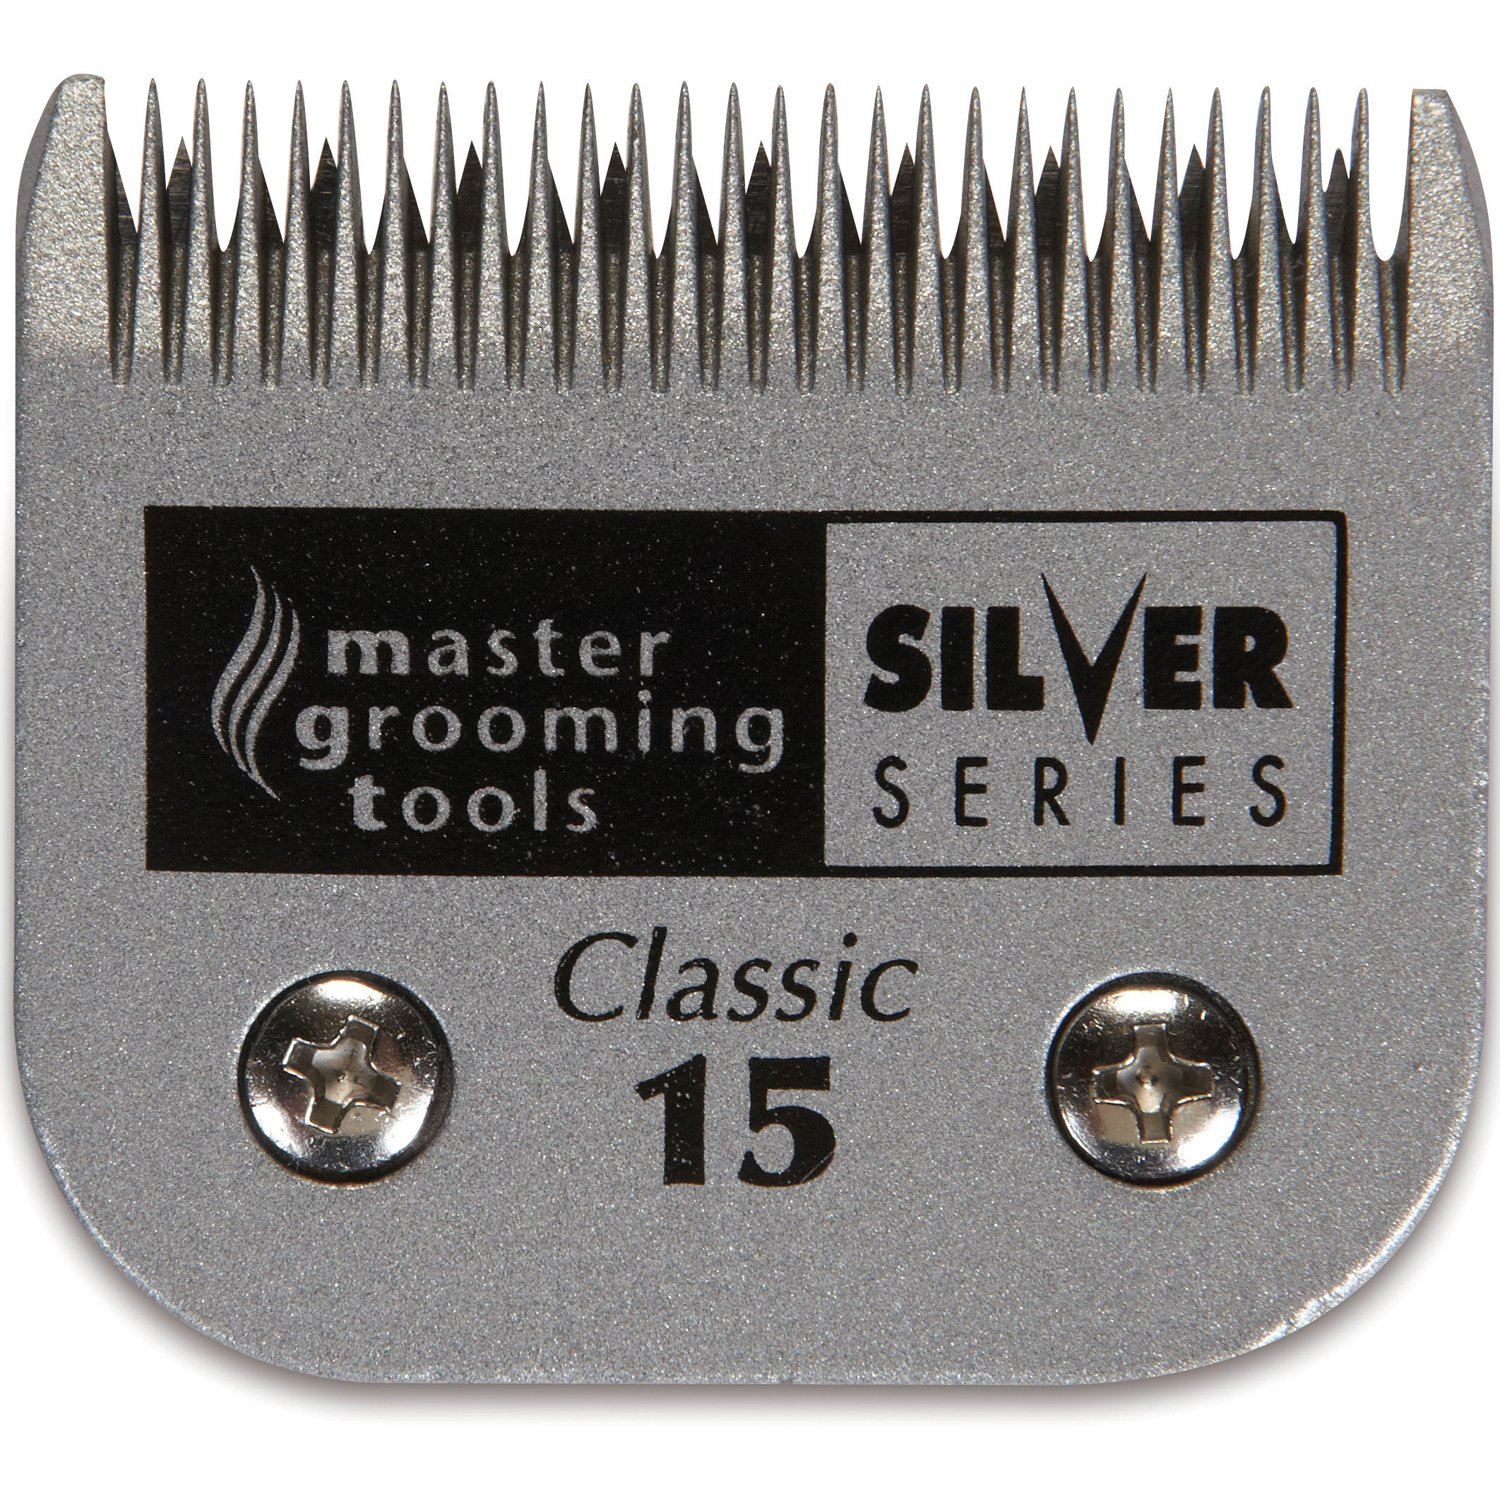 Master Grooming Tools Silver Series Steel Blades - Detachable Blades for A5-Style Dog-Grooming Clippers - #15, 3/64''